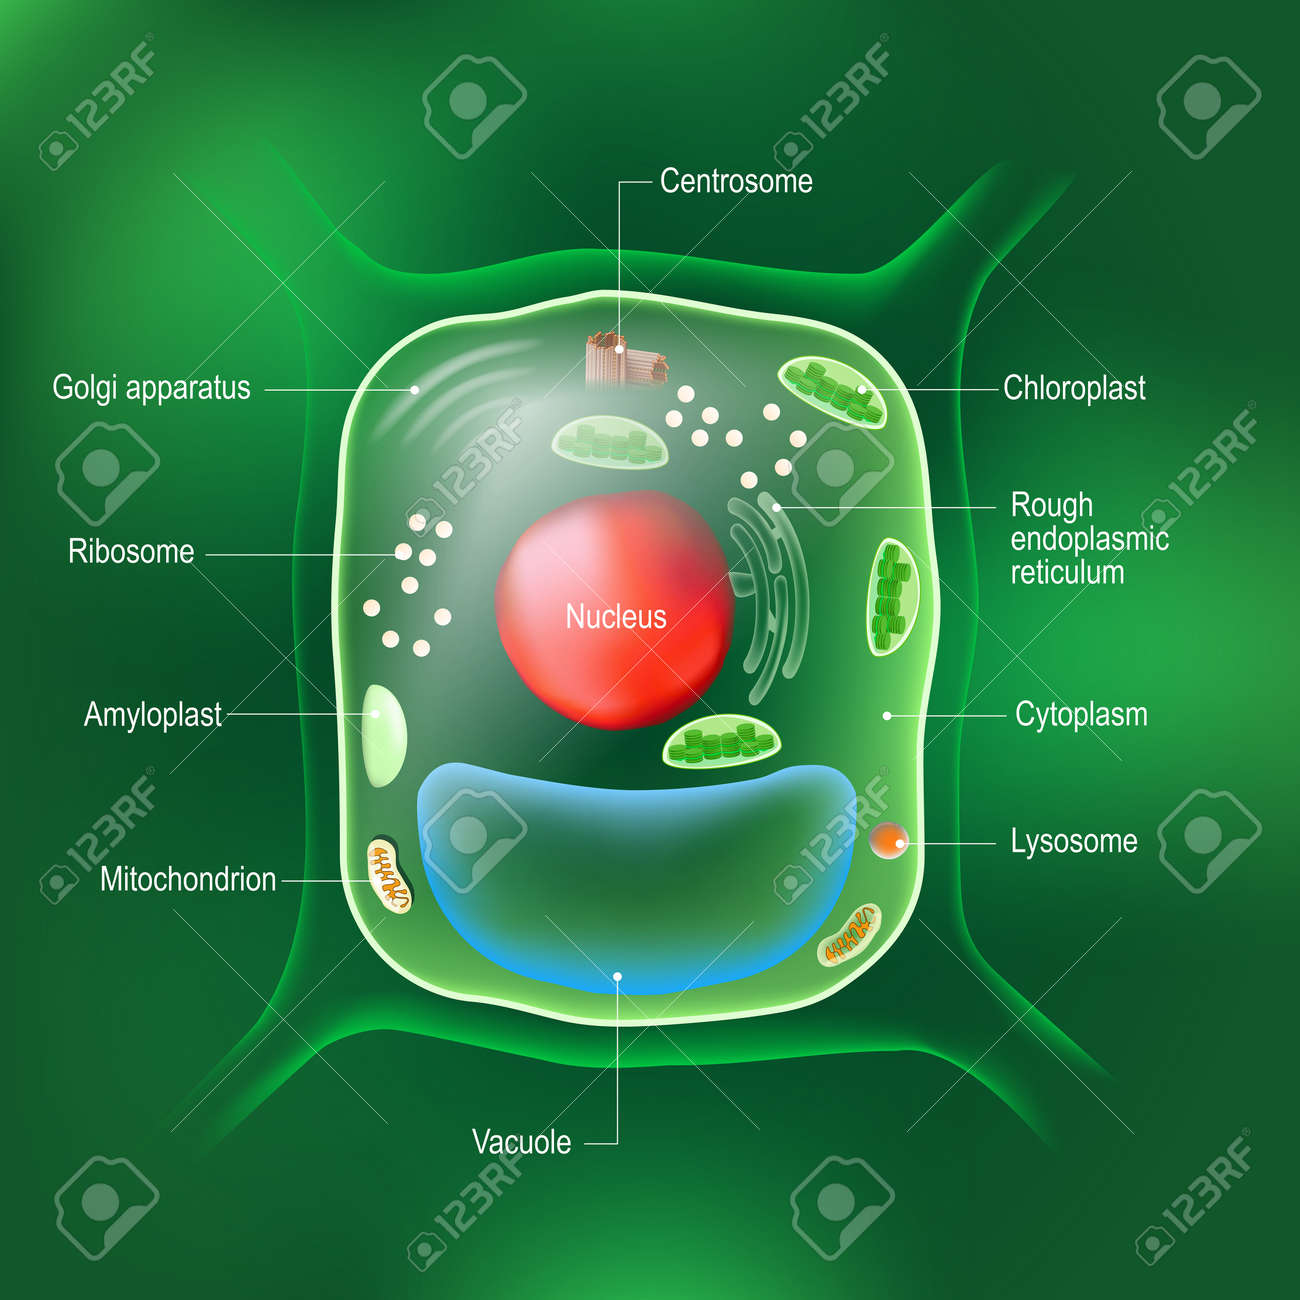 Anatomy of plant cell. All organelles: Nucleus, Ribosome, Rough endoplasmic reticulum, Golgi apparatus, mitochondrion, amyloplast, vacuole, chloroplast, cytoplasm, lysosome, Centrosome. cell on the green background. - 172585698